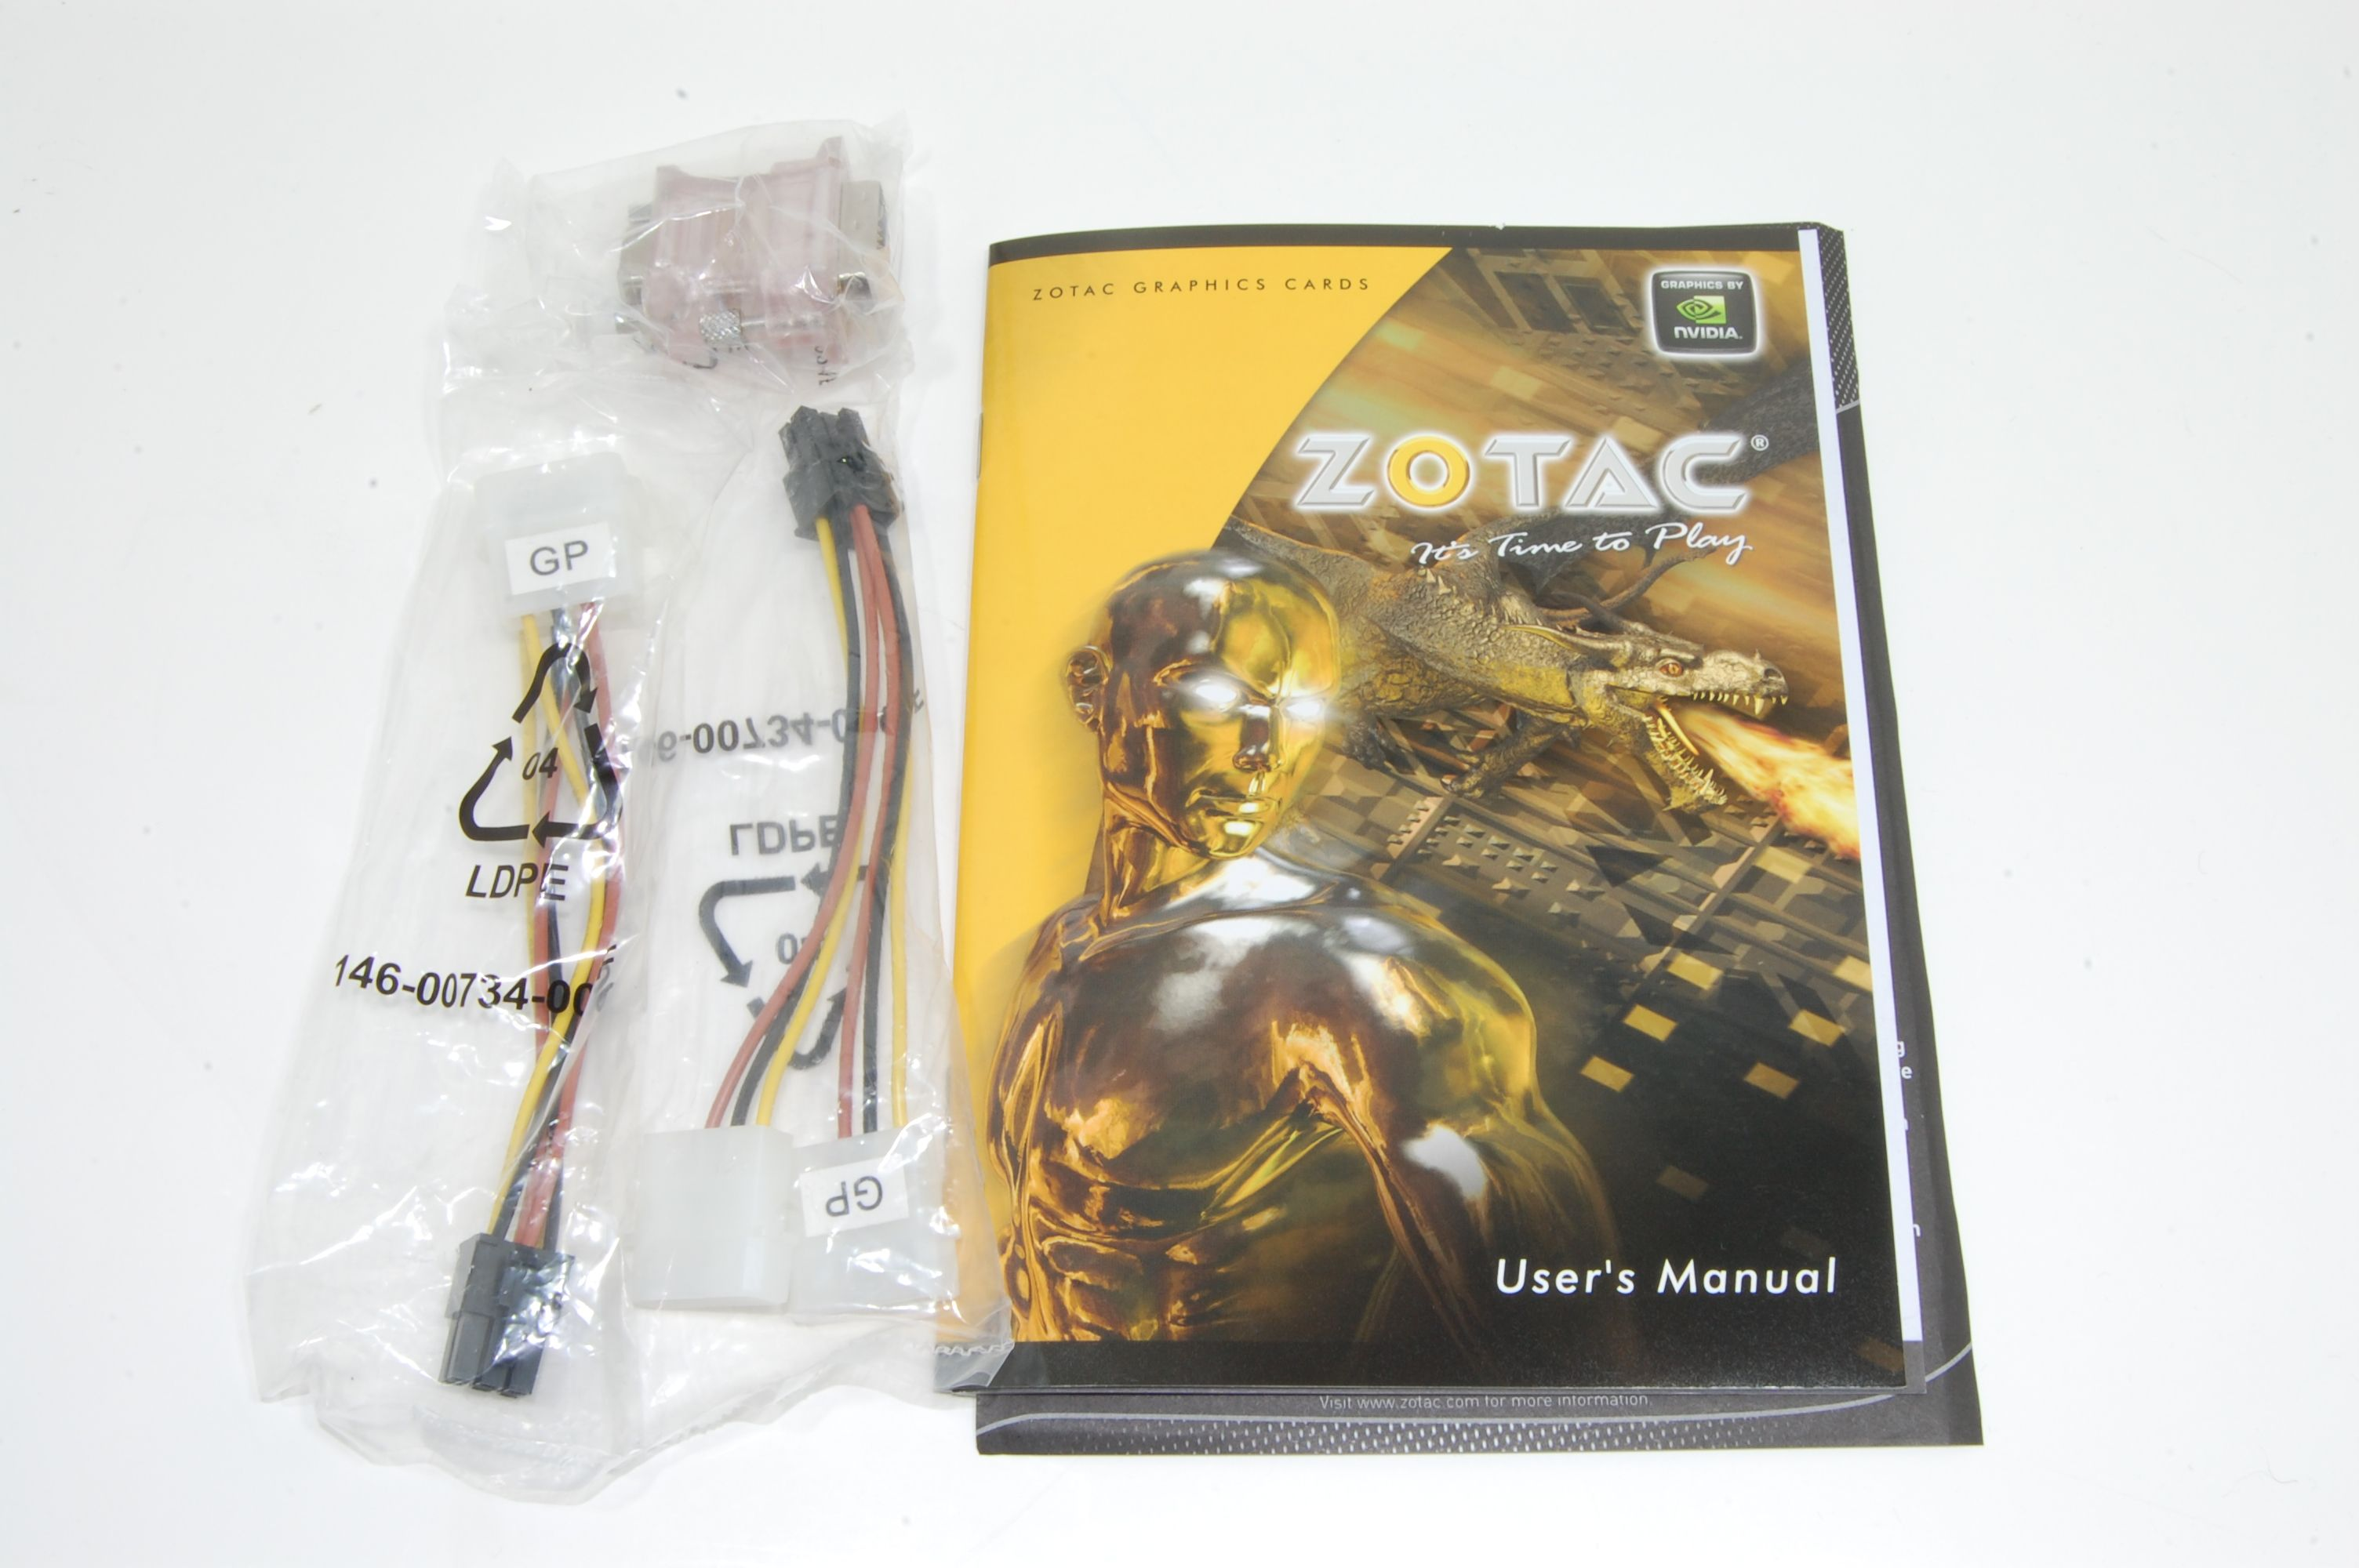 Zotac GTX 560 Multiview Accessories